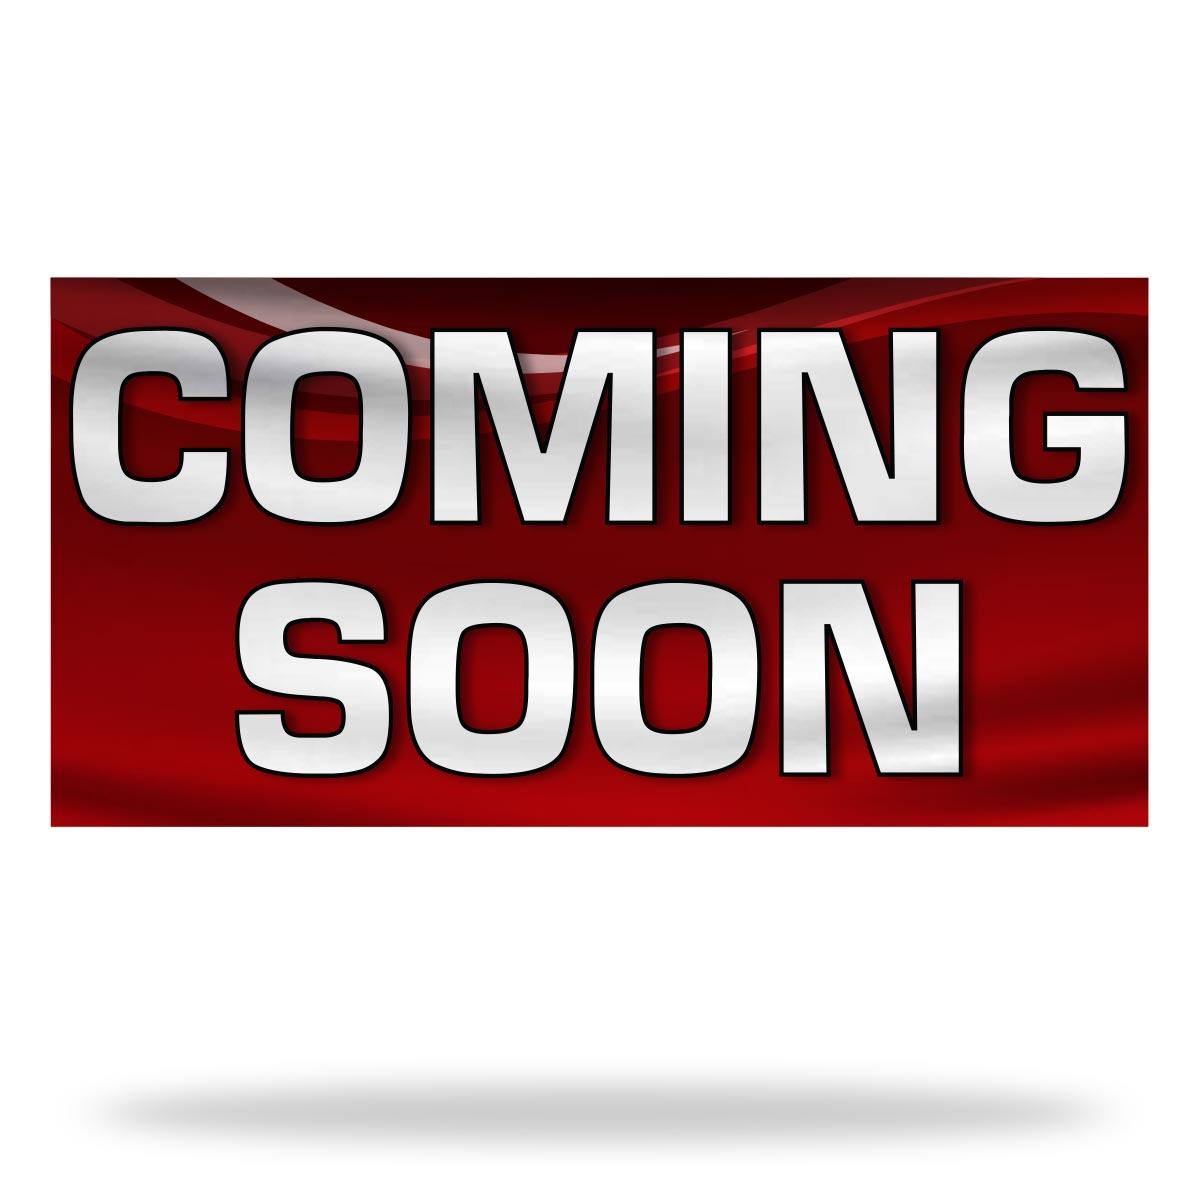 Coming Soon Flags & Banners Design 01